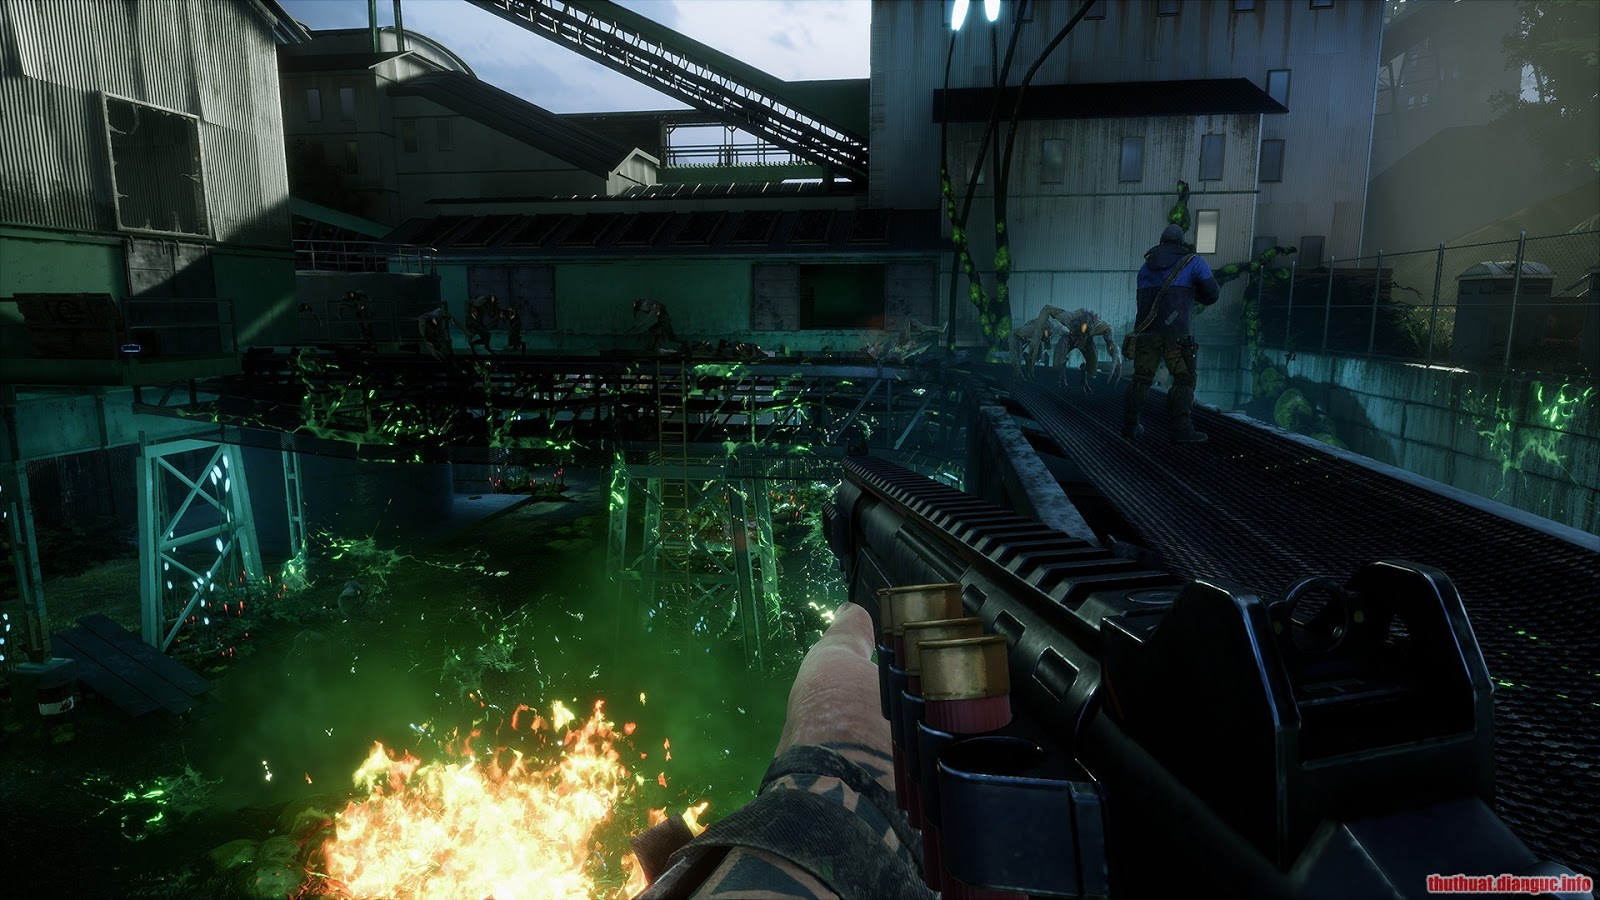 Download Game Earthfall Full Crack, Game Earthfall , Game Earthfall free download, Game Earthfall full crack, tải Game Earthfall miễn phí